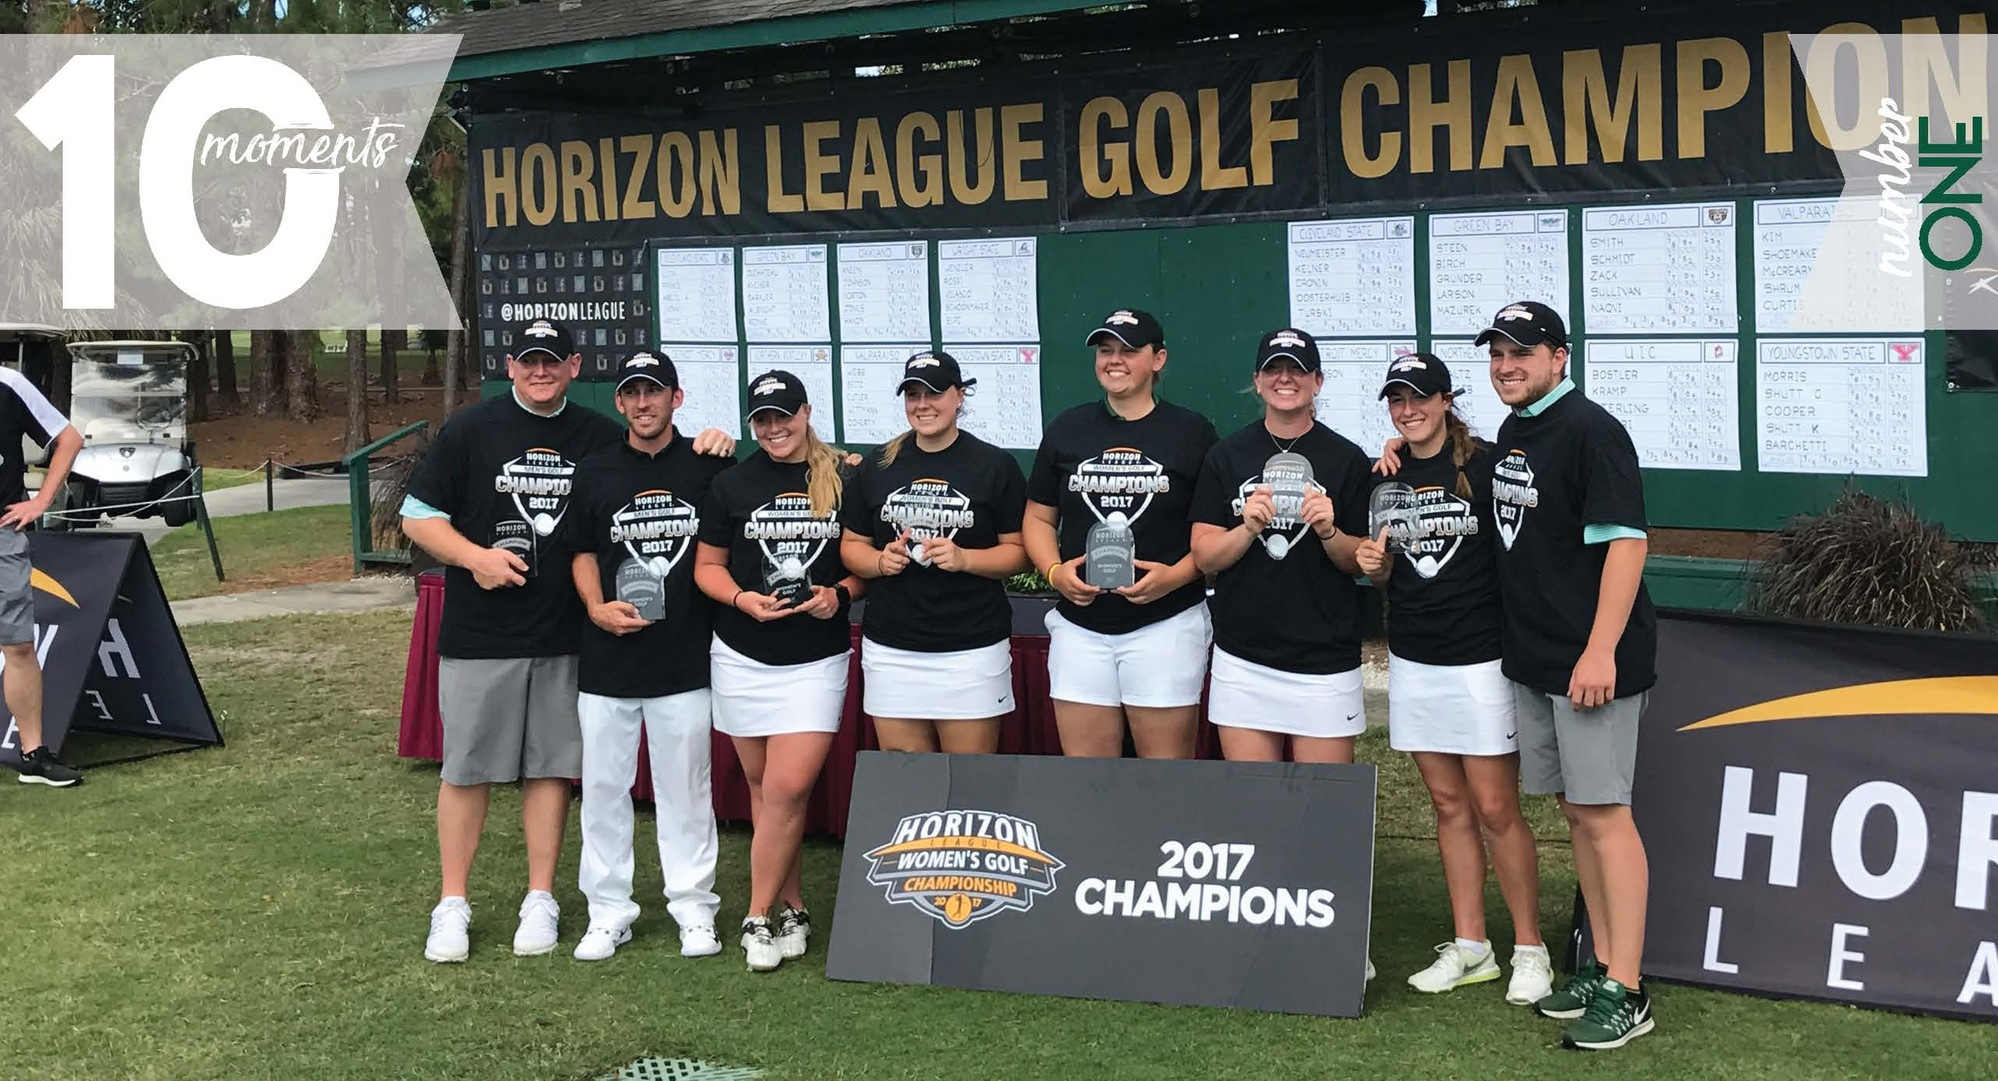 2016-17 CSU Athletics Top 10 Moments | #1 Women's Golf Wins First League Title in Program History